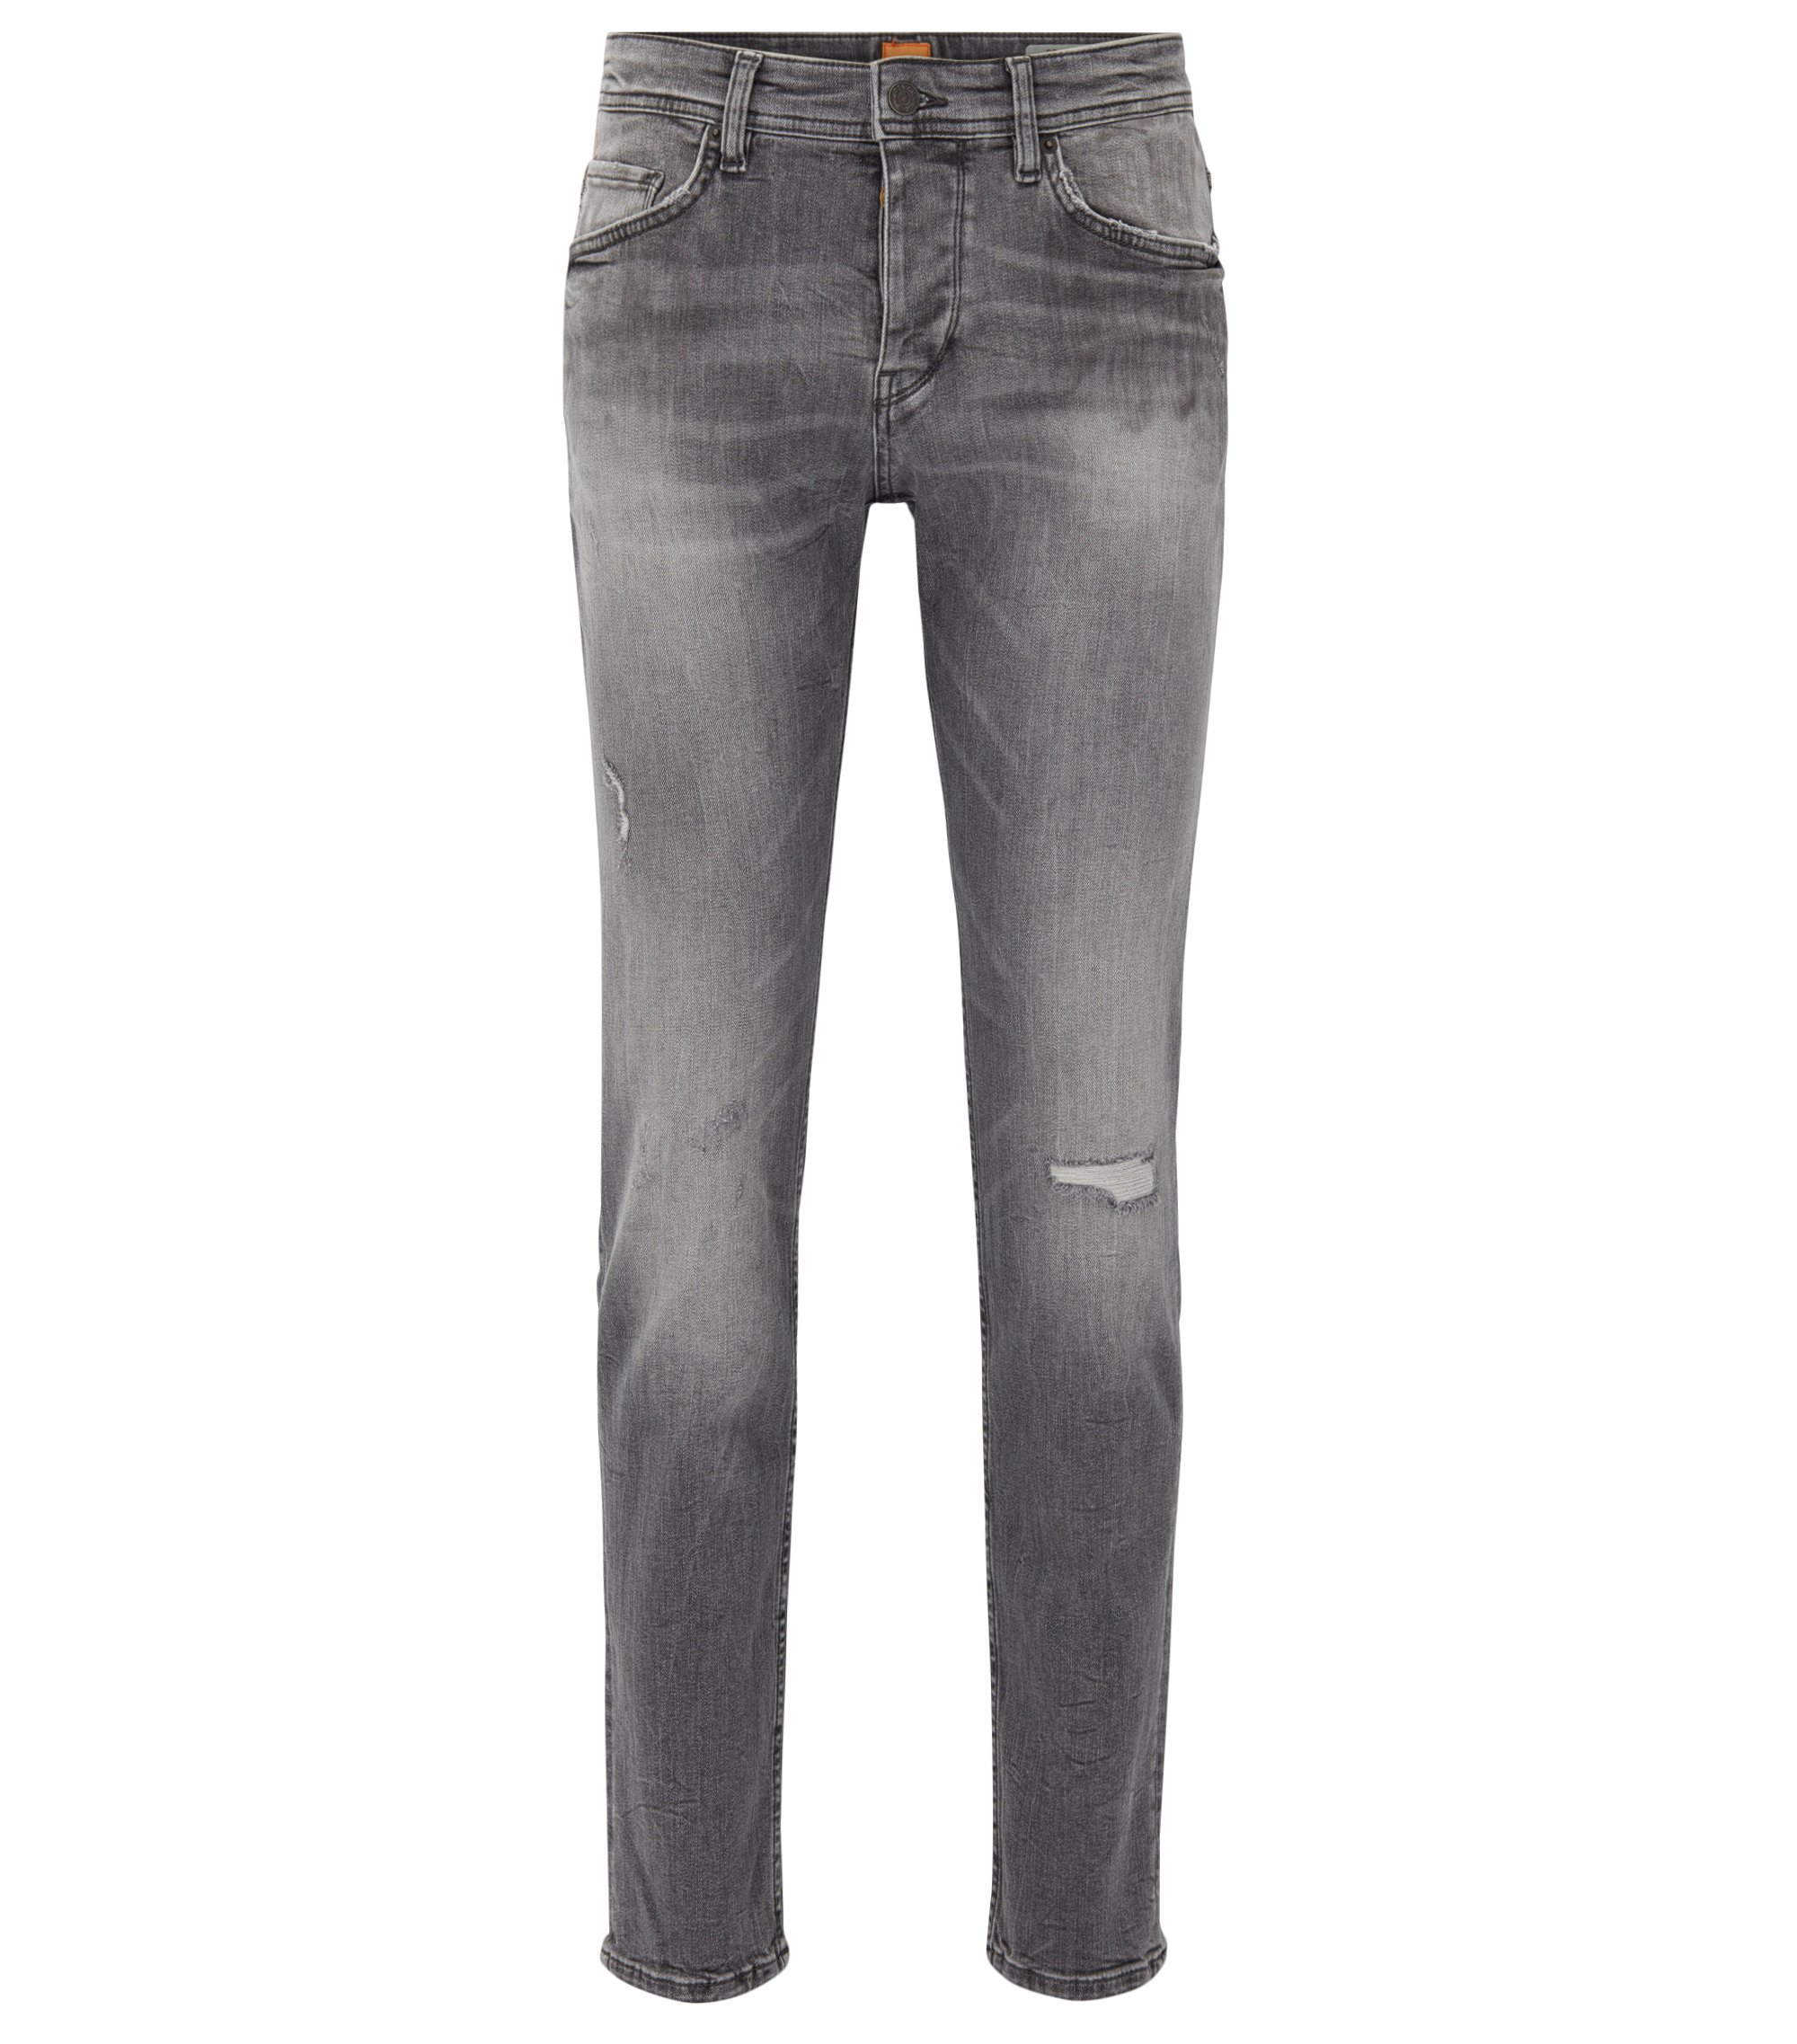 Jeans Tapered Fit noir en denim stretch recyclé, Gris